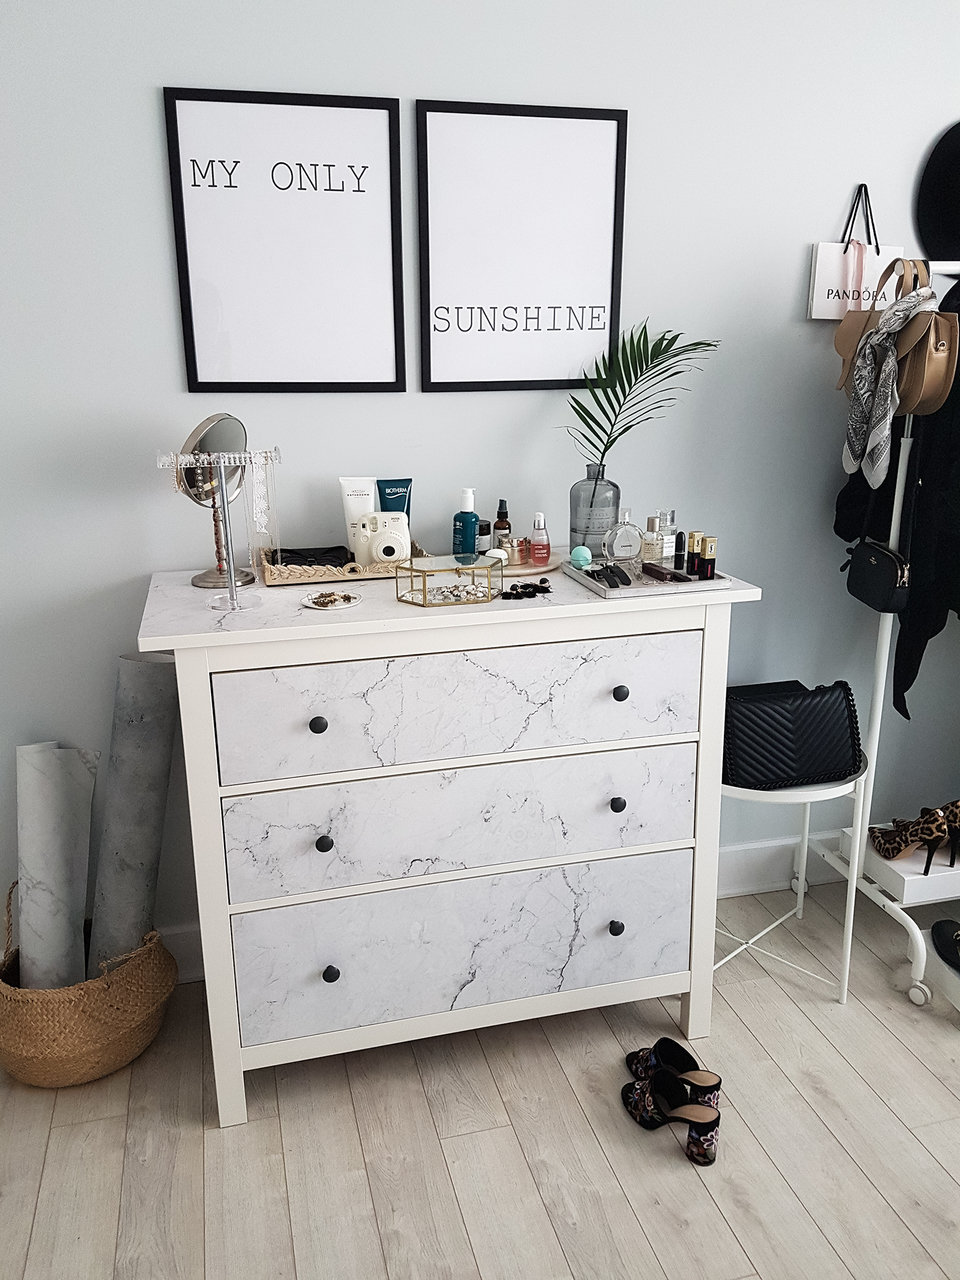 DIY Ikea hemnes dresser makeover with self-adhesive marble wallpaper from Pixers. Styled by